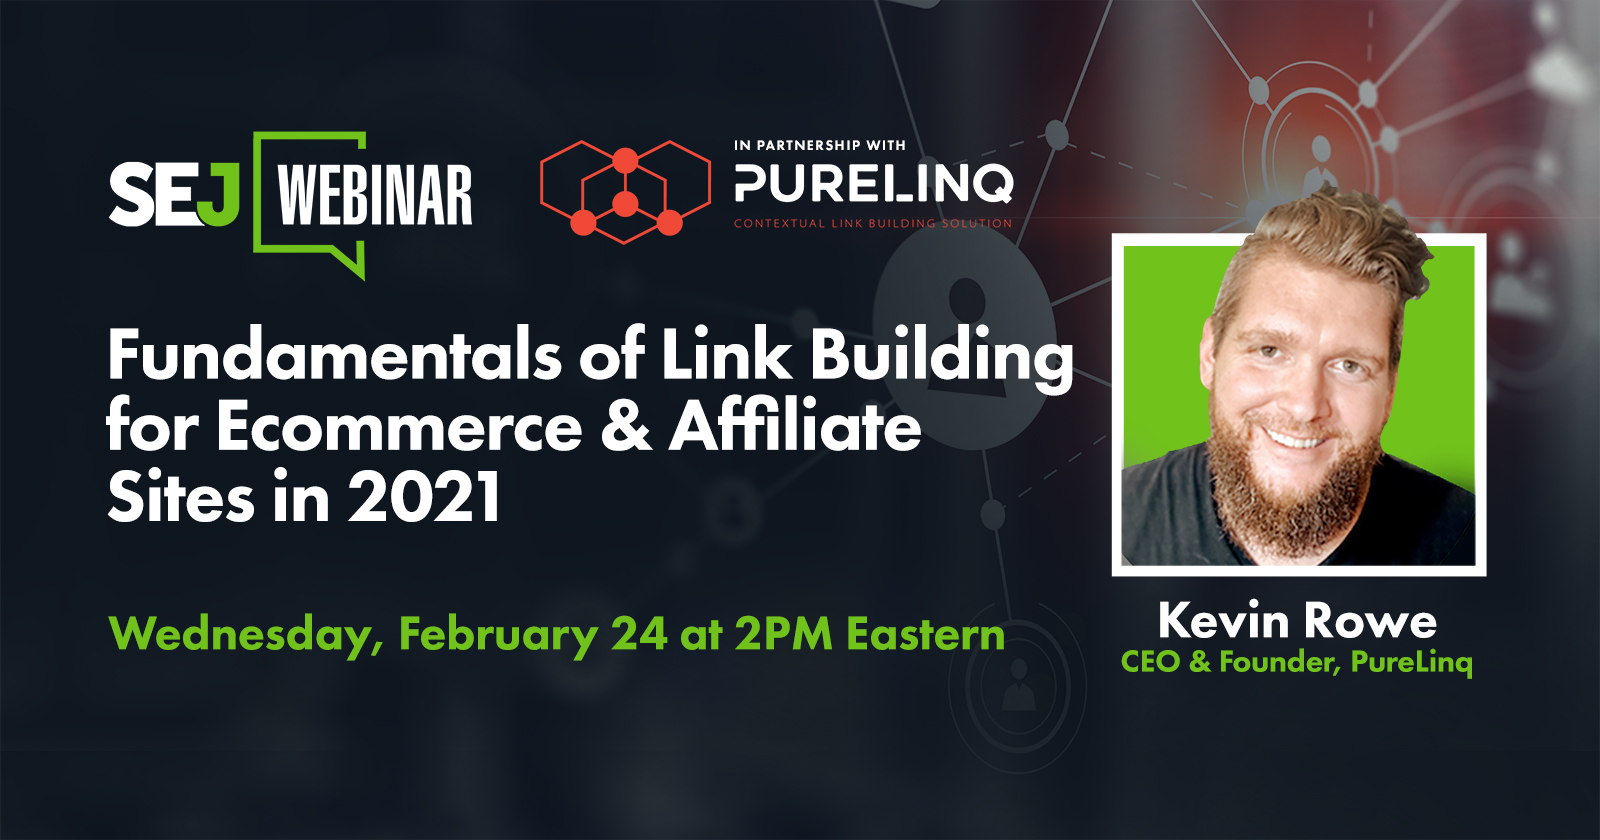 How to Build Links for Ecommerce & Affiliate Sites [Webinar]